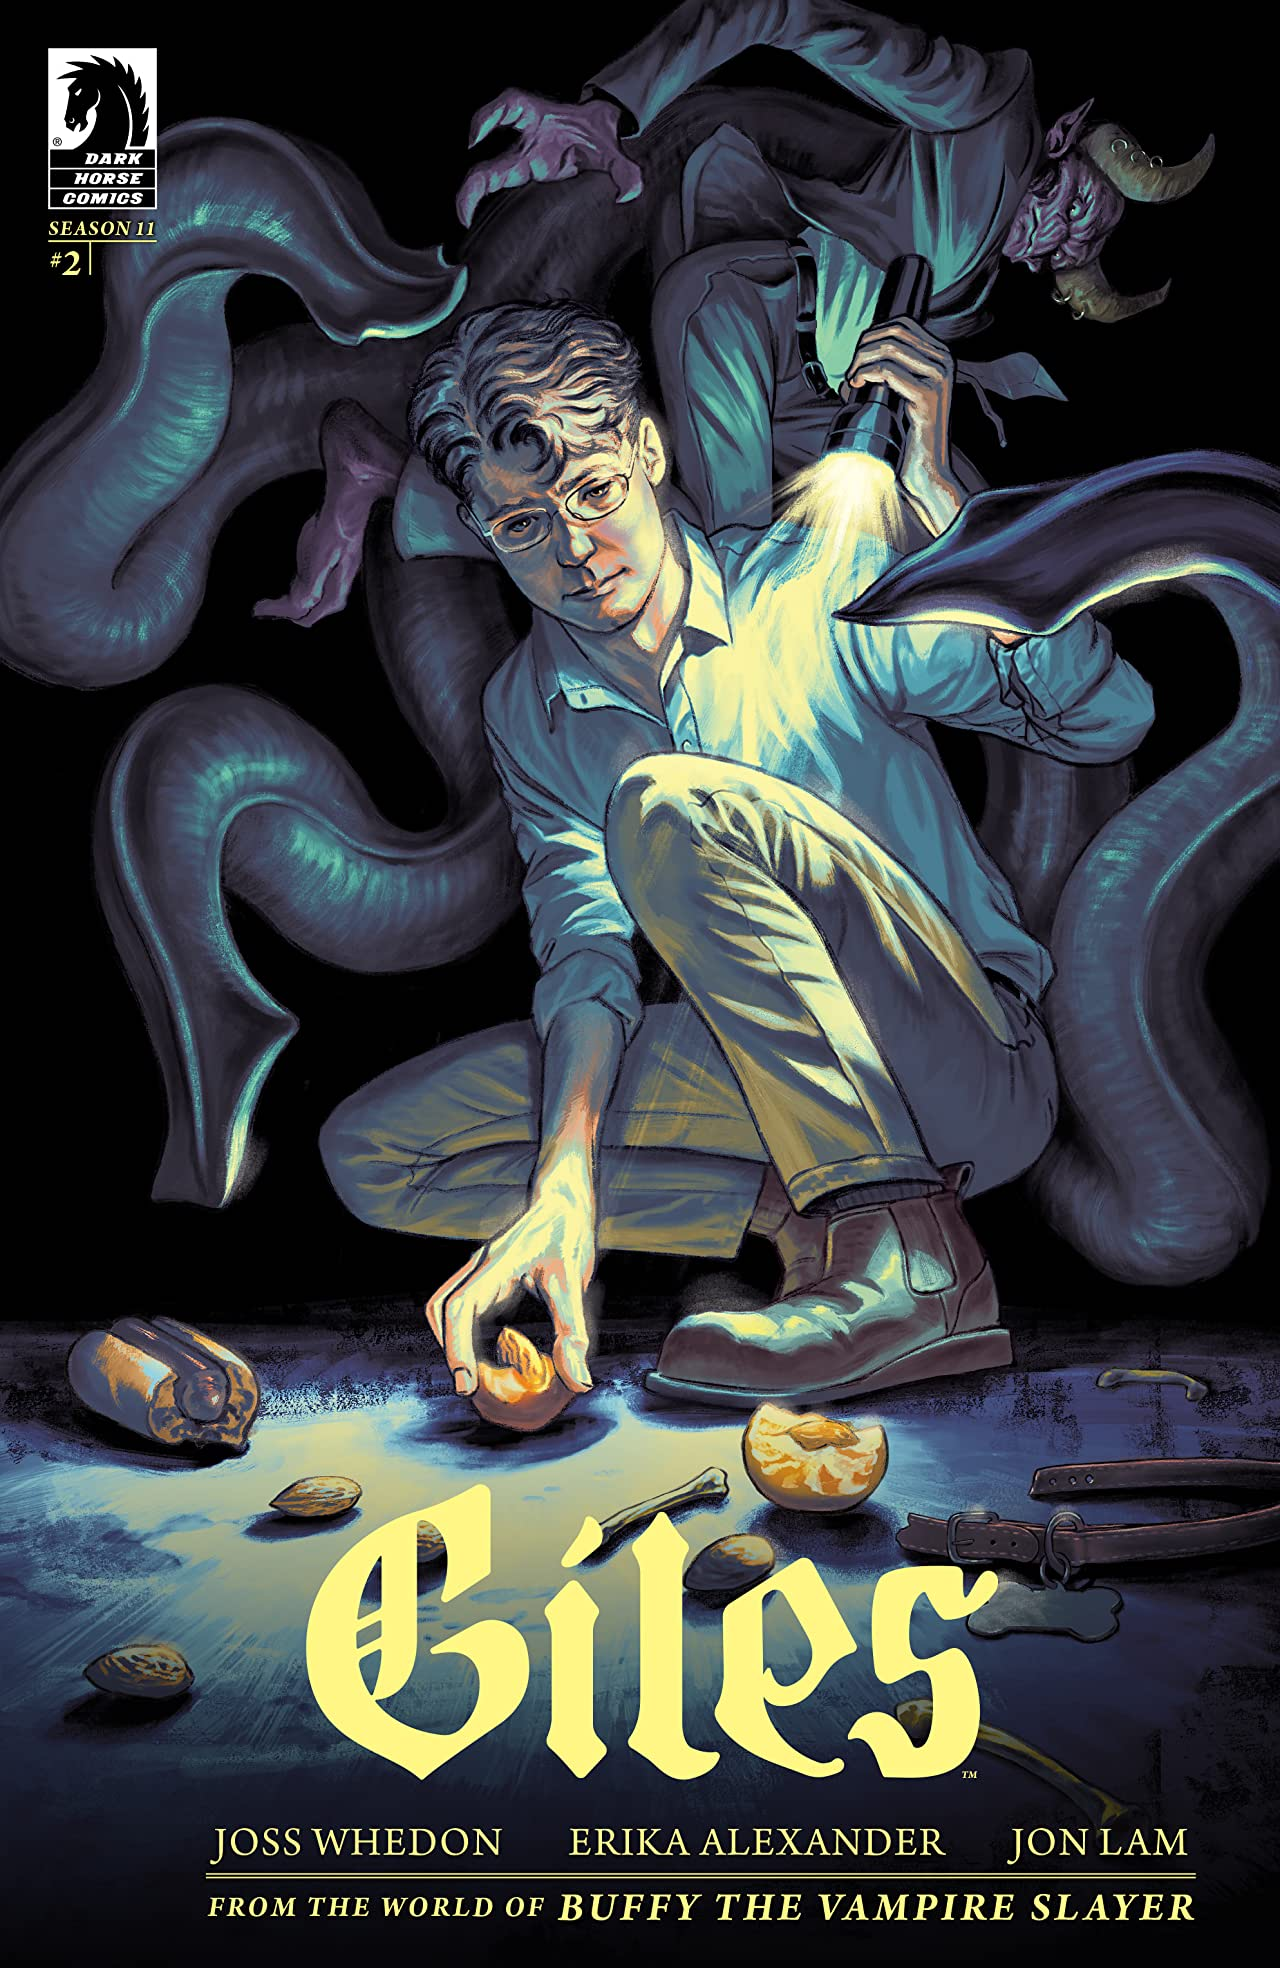 Buffy Season 11: Giles No.2